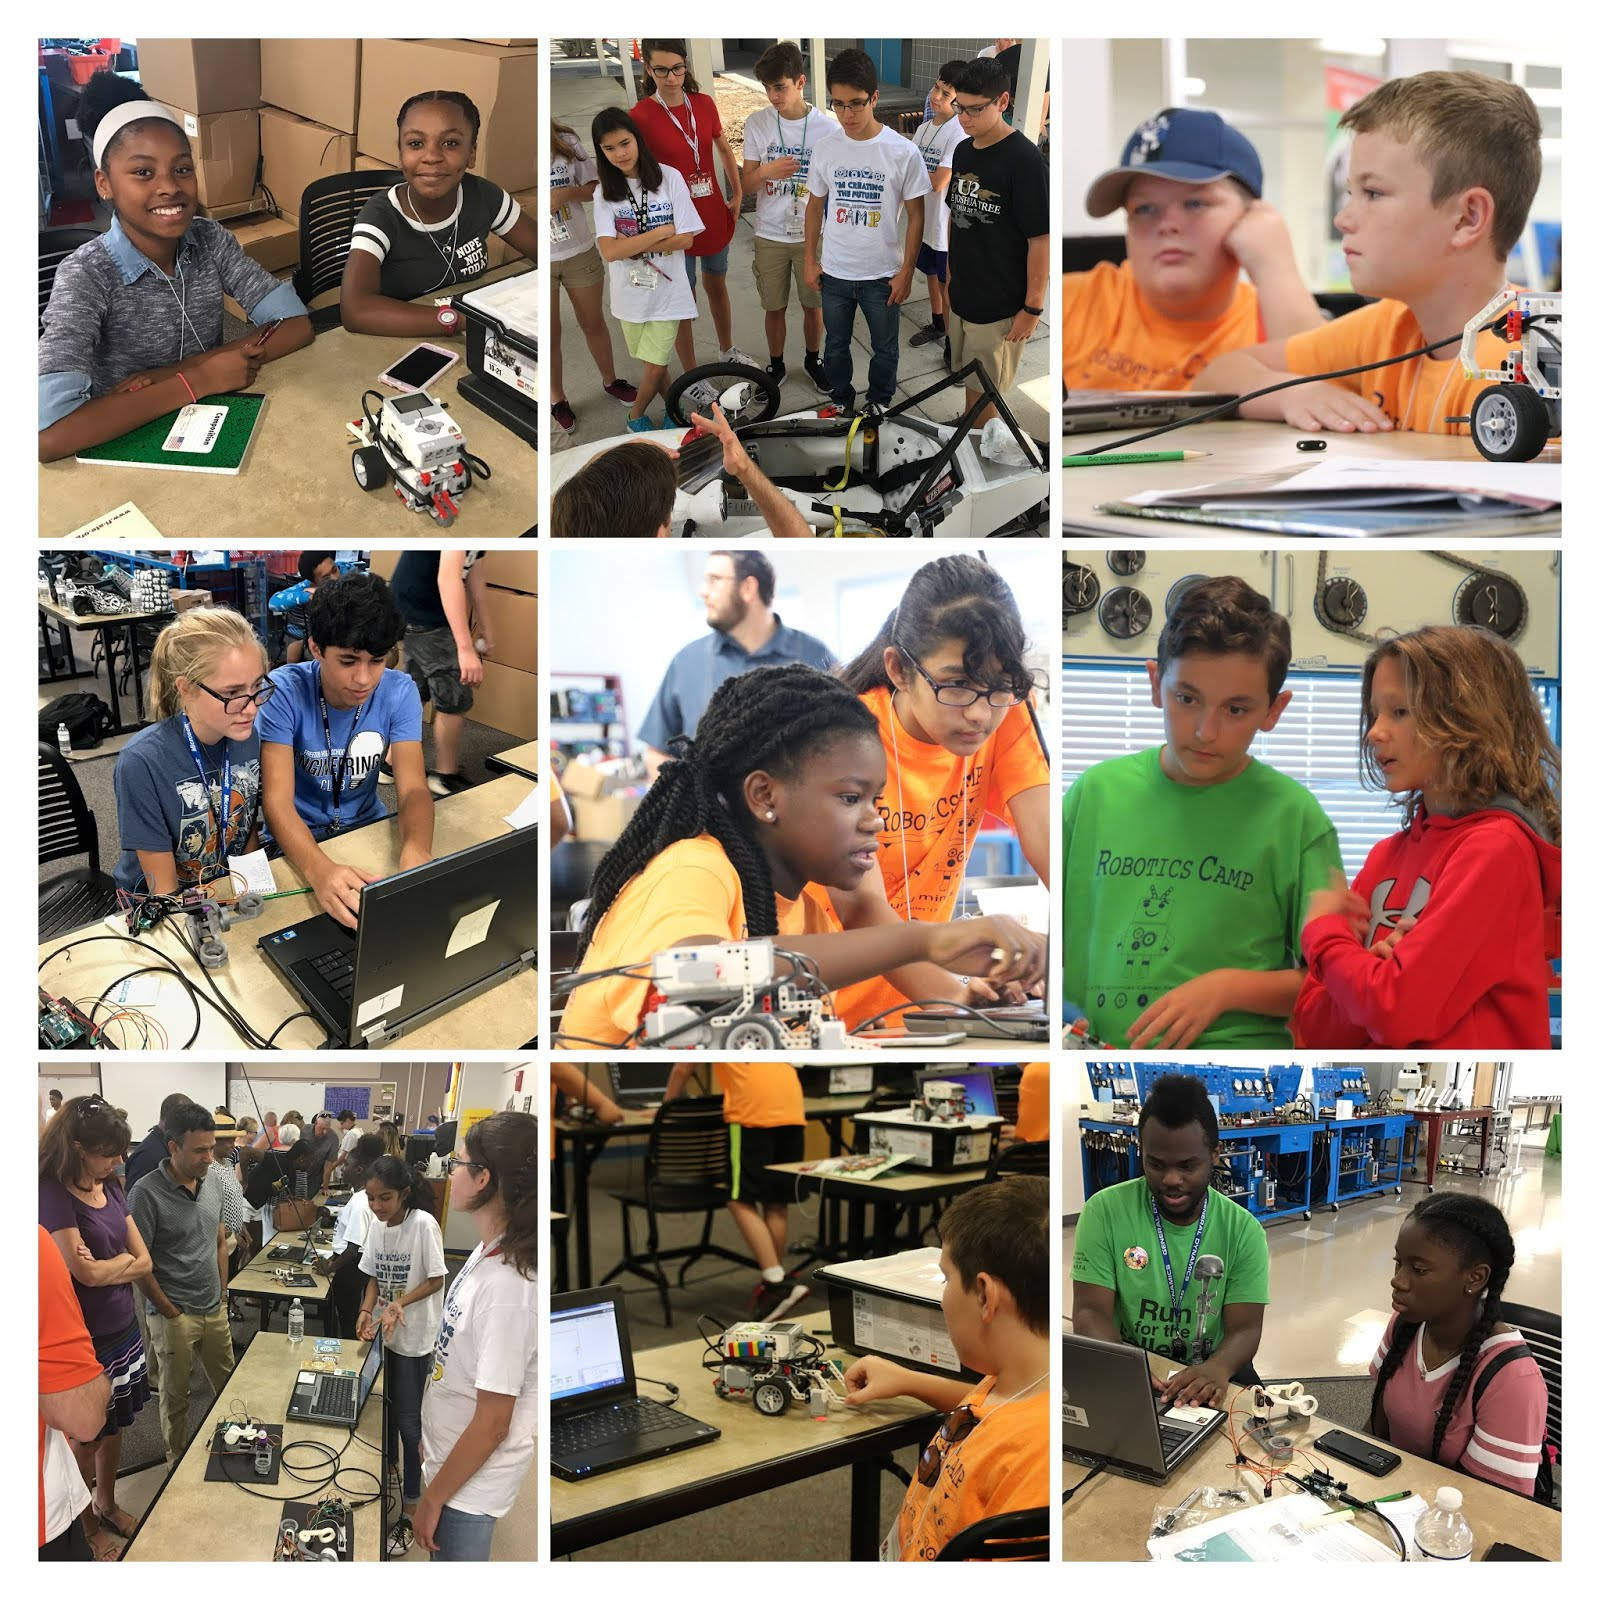 2017 Robotics Camps Photo Montage